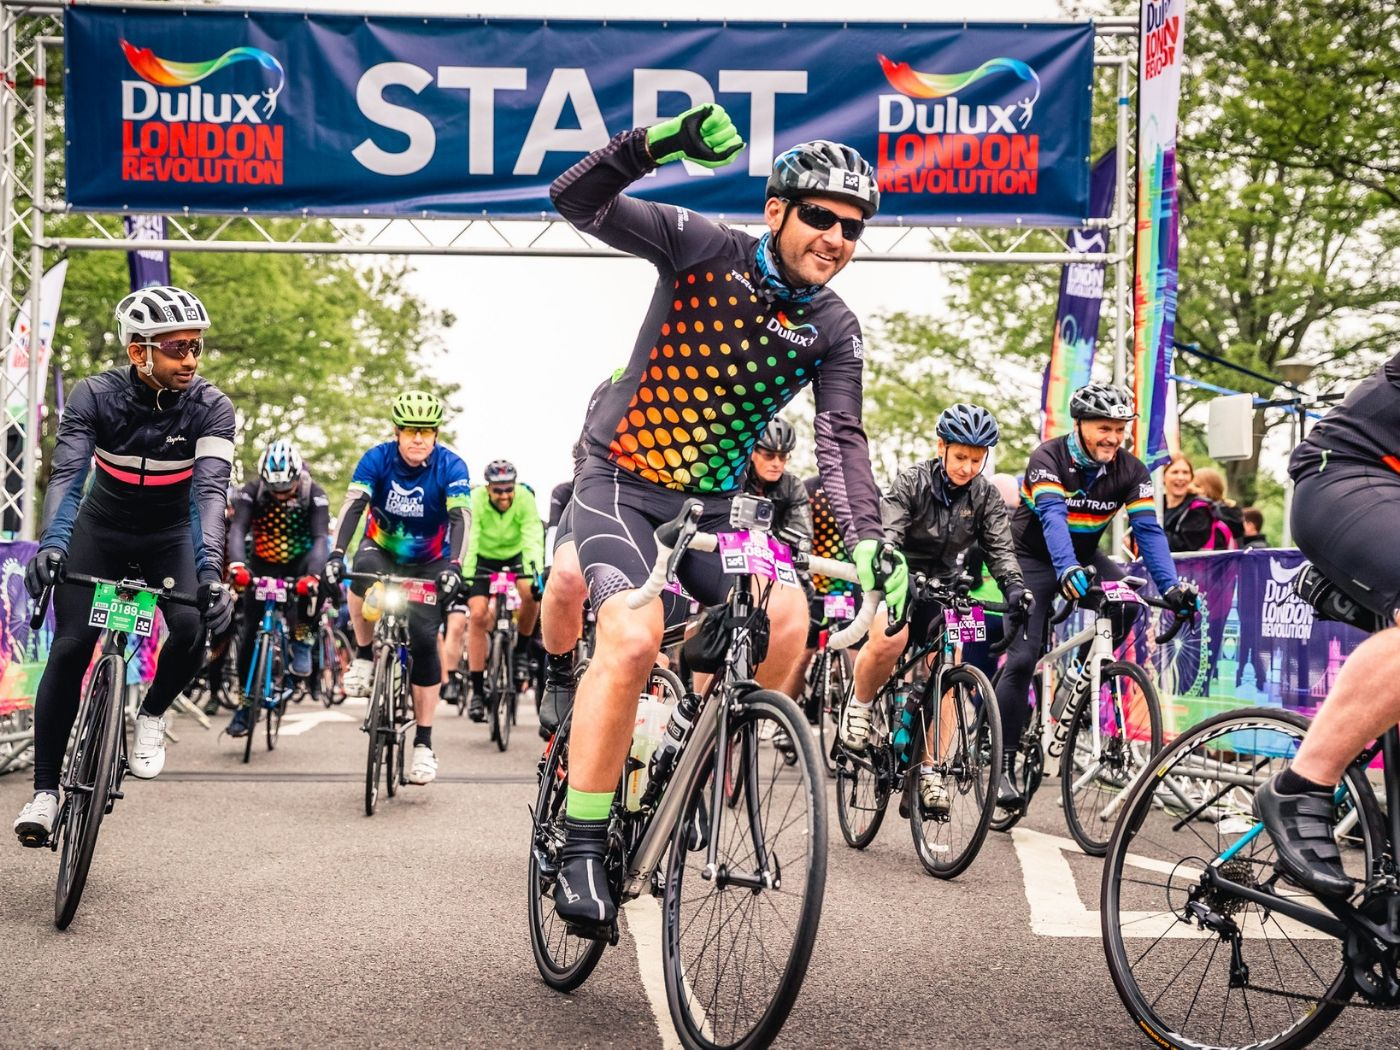 Cyclists crossing the start line at Dulux London Revolution